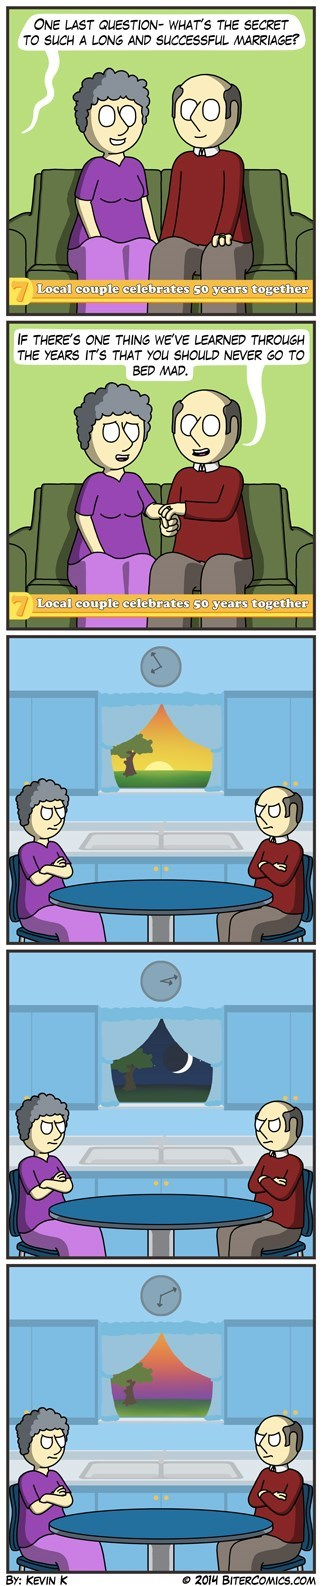 marriage relationships successful web comics - 8287365376